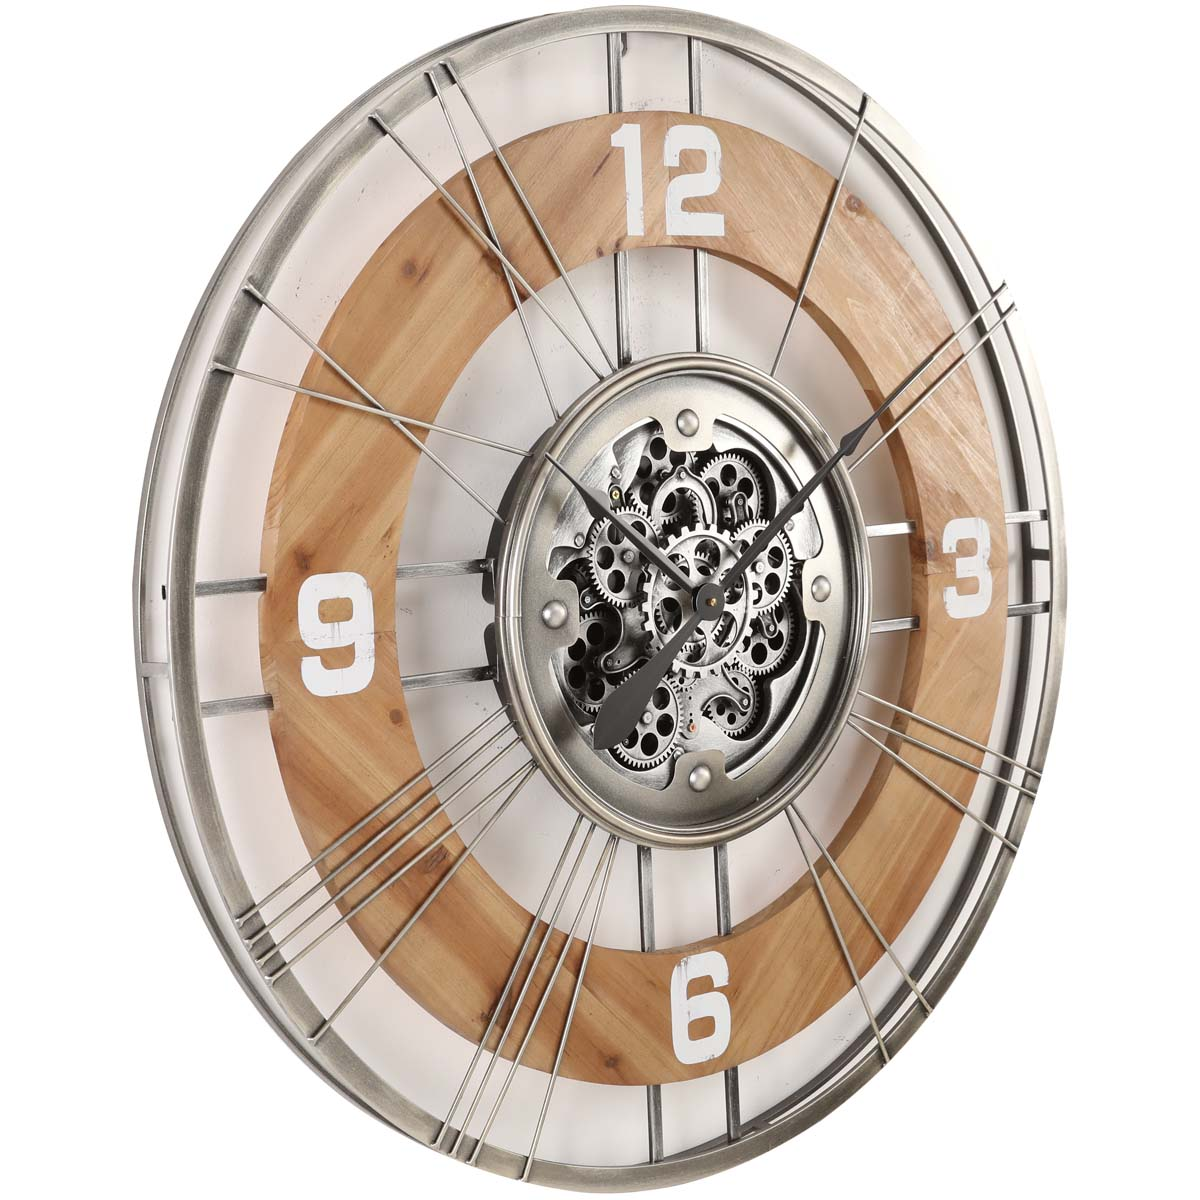 Chilli Decor Hampton Industrial Country Wood Metal Moving Gears Wall Clock 90cm TQ-Y692 1